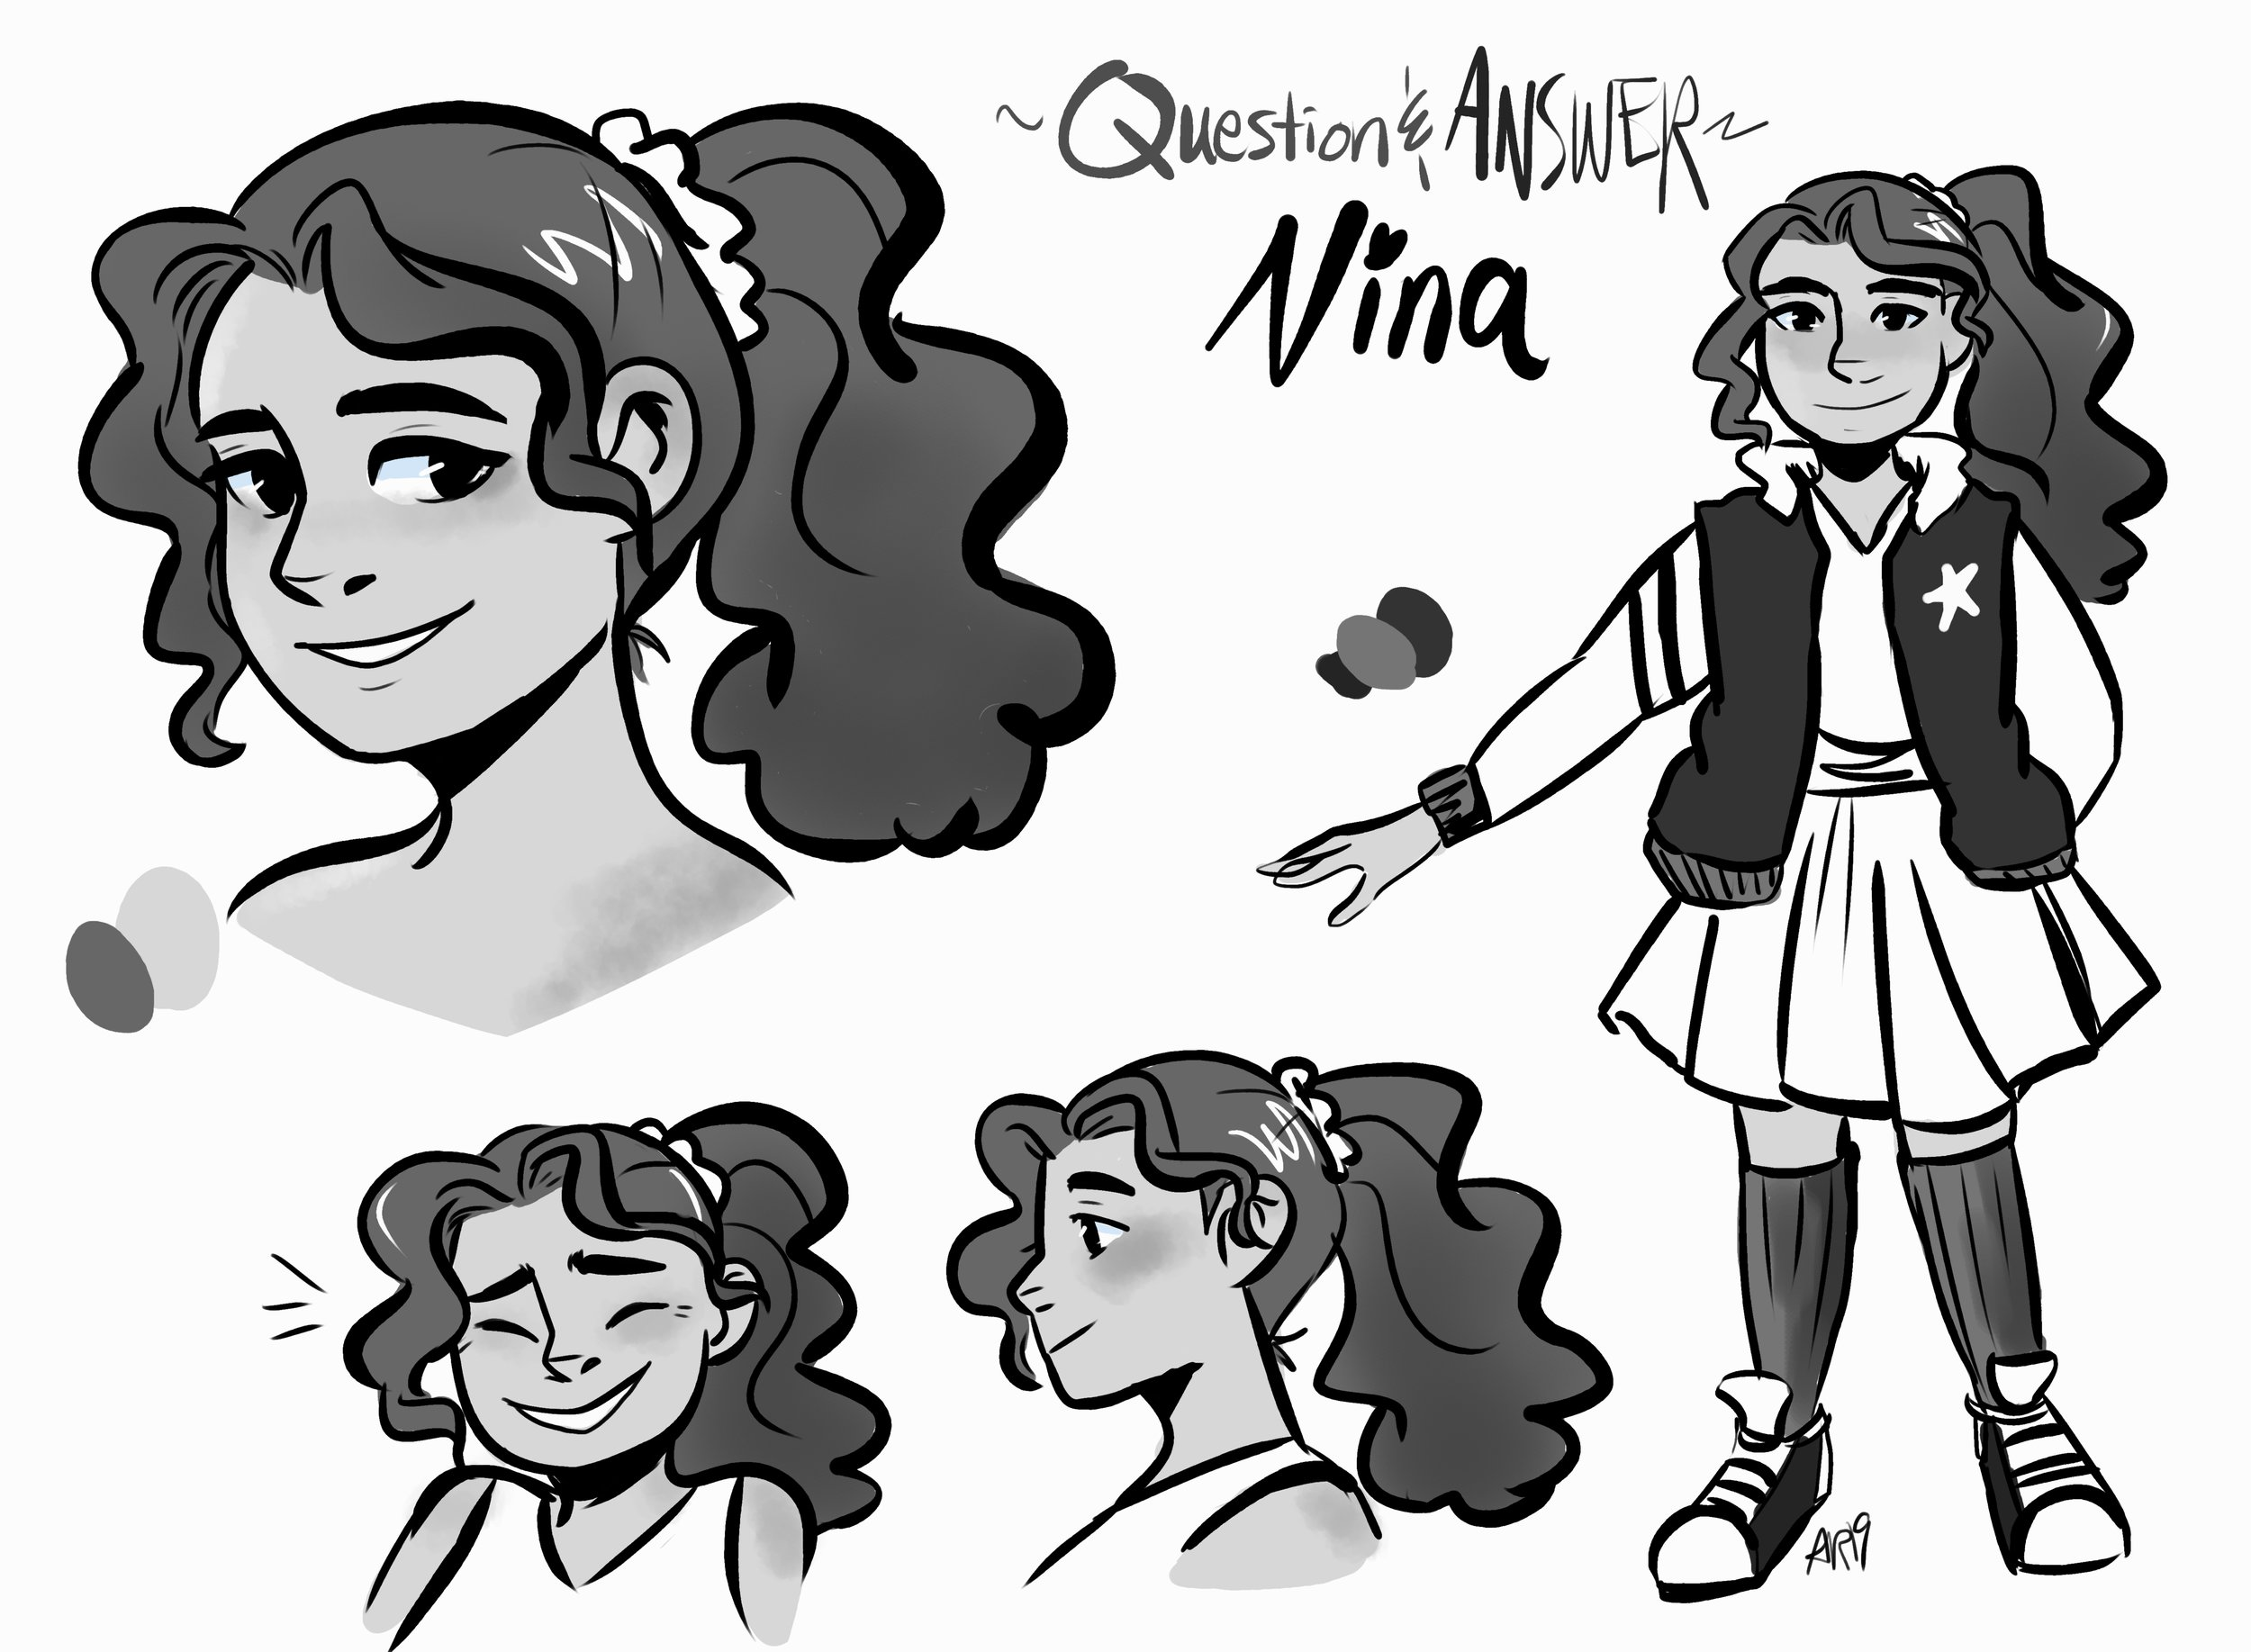 Question And Answer: Nina